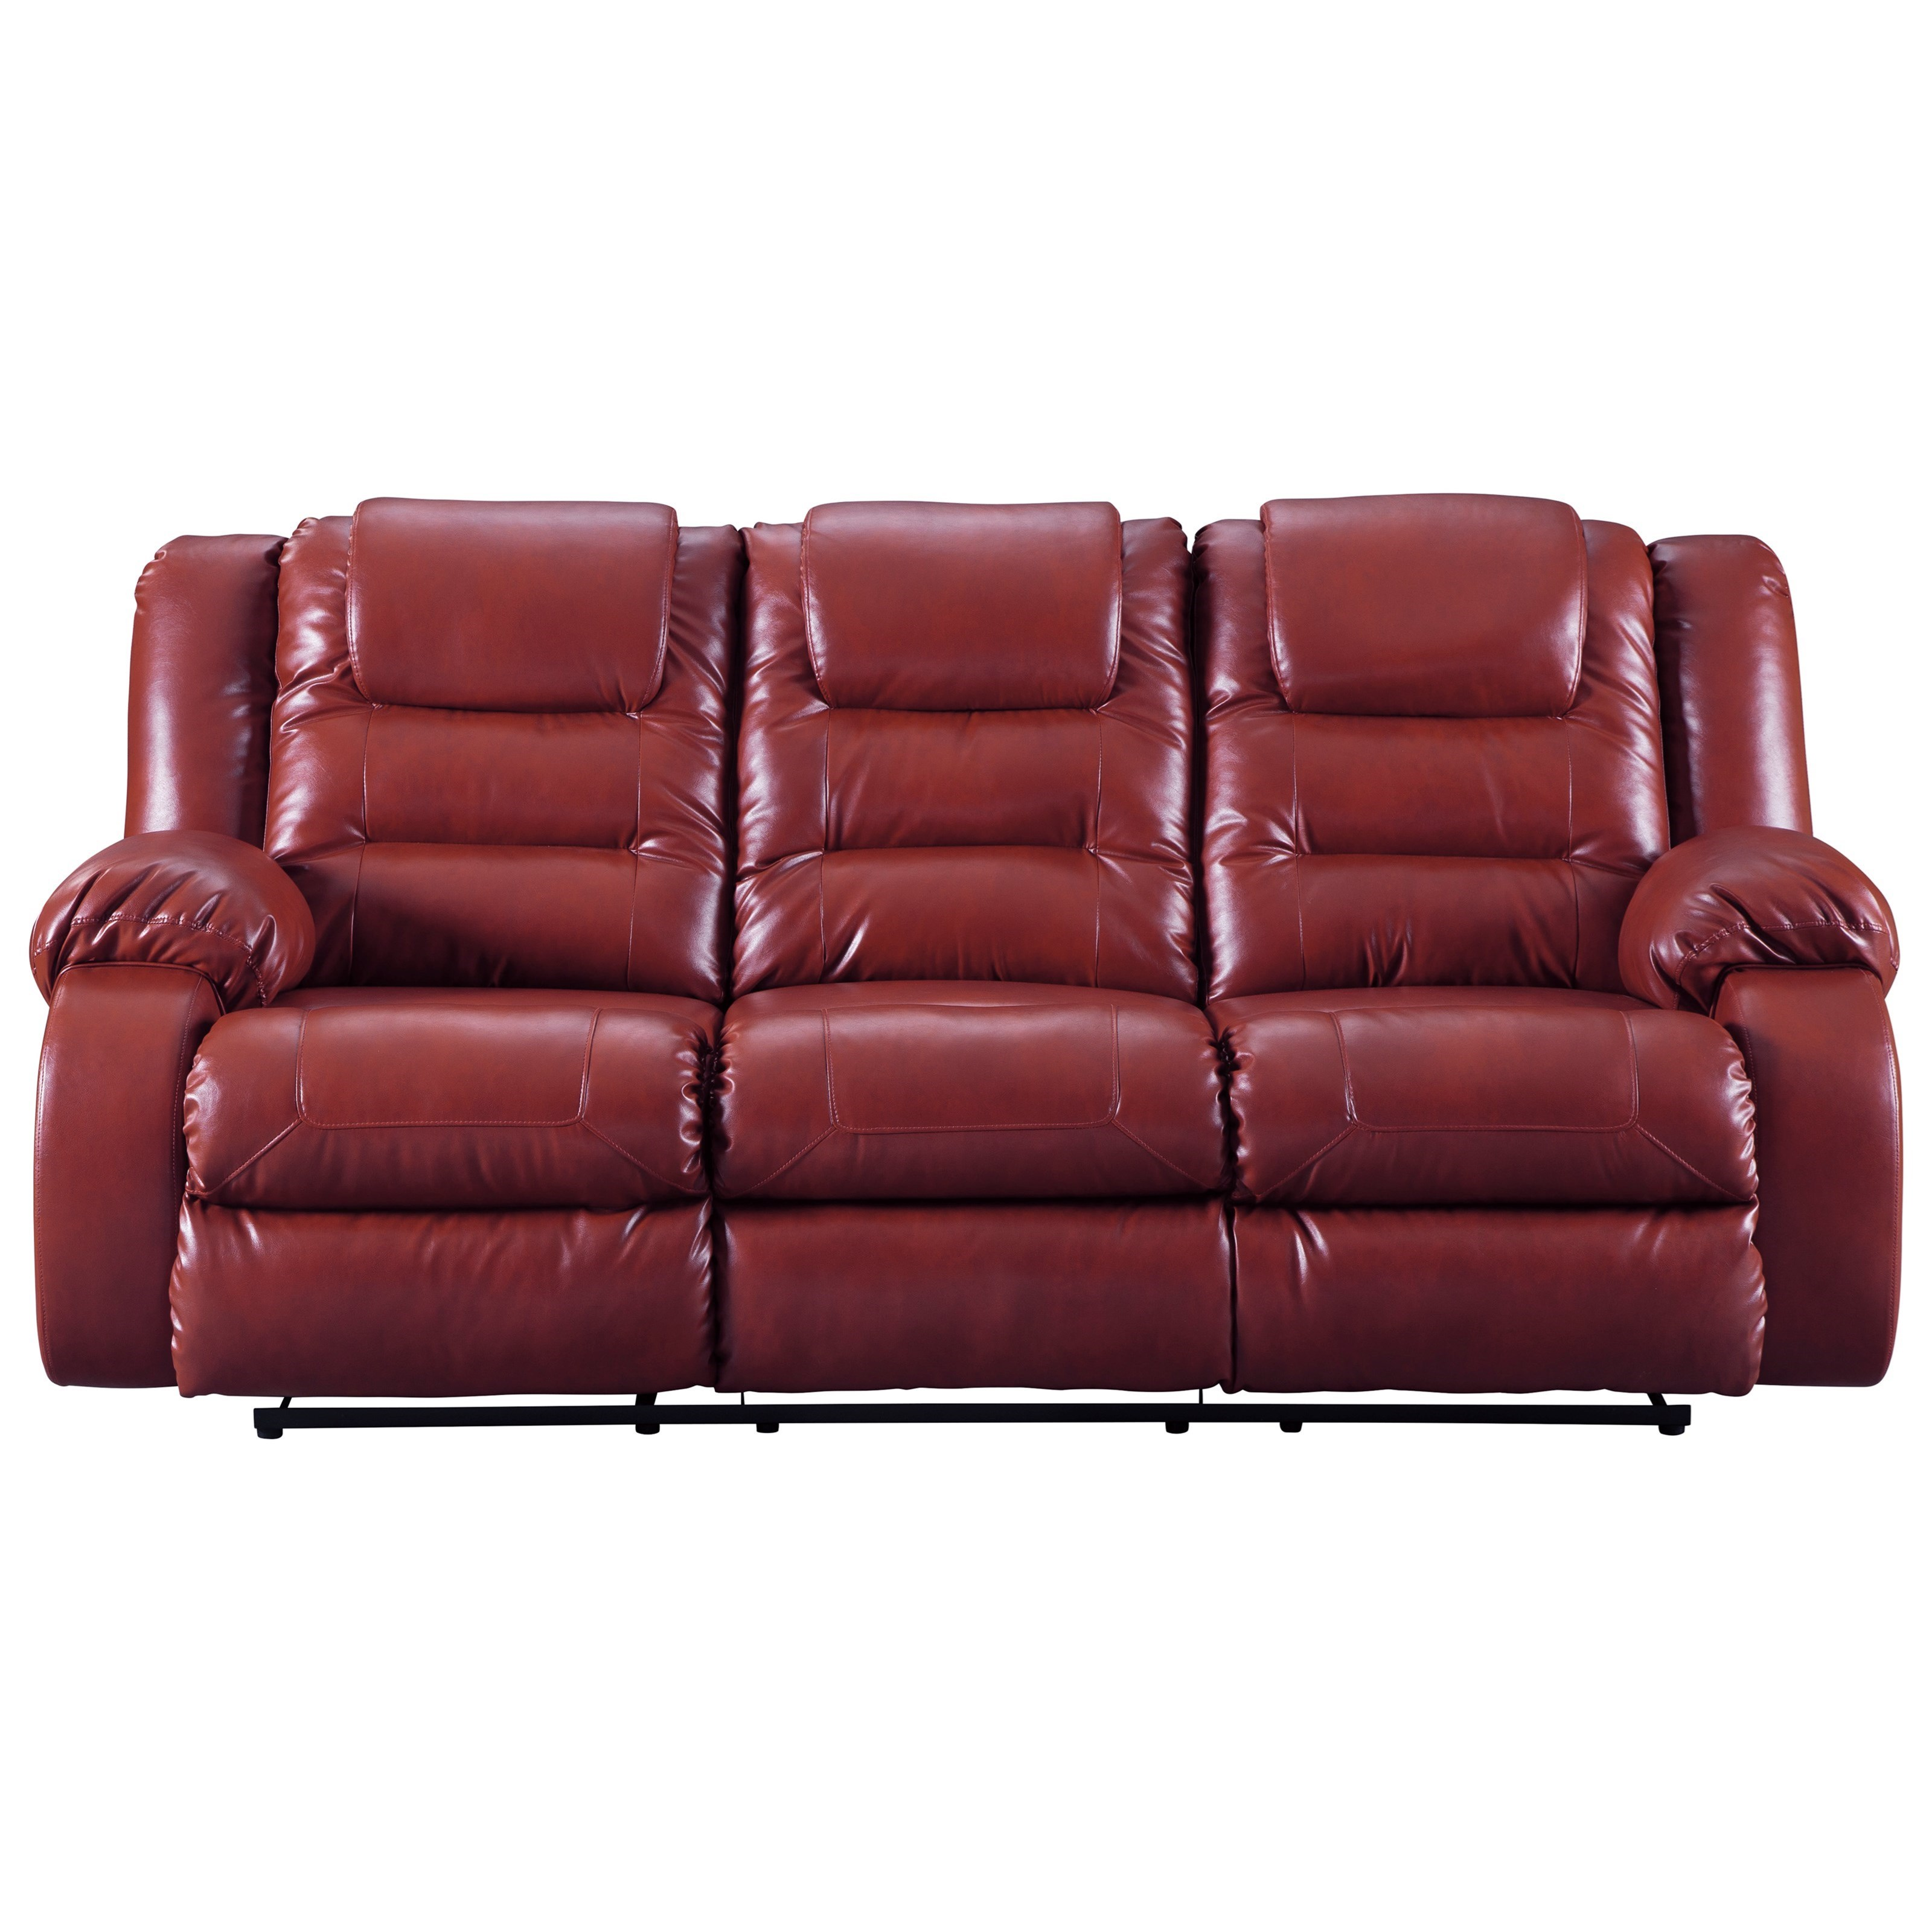 Vacherie Reclining Sofa by Signature Design by Ashley at Sparks HomeStore